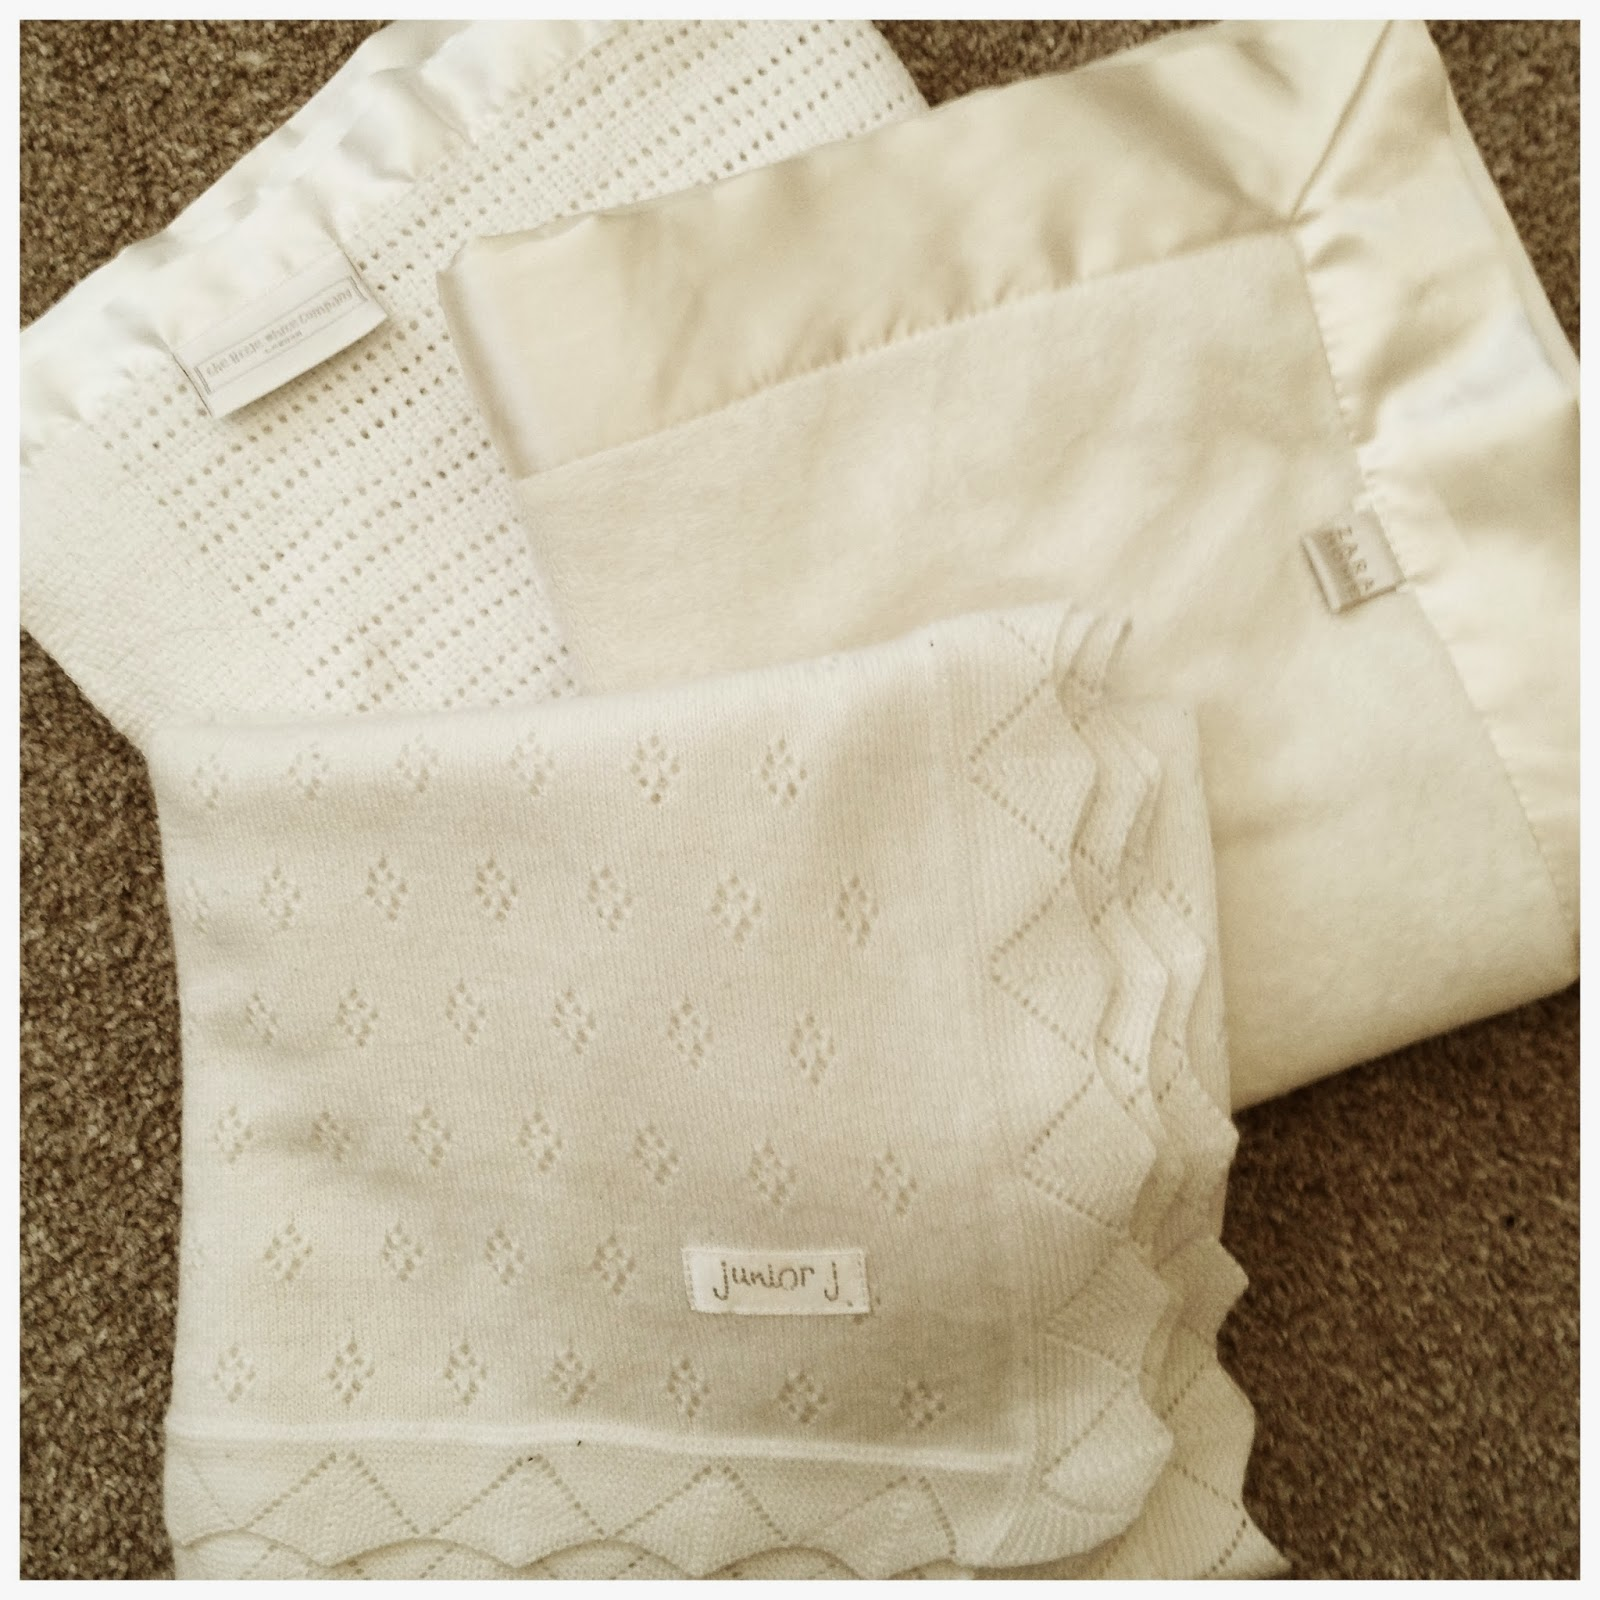 mamasVIB | V. I. BUYS: My 3 favourite baby blankets in classic white, baby blankets | best blankets for nursery | V. I. BASICS | mamasVIB | debenhams | Zara | The Little white company